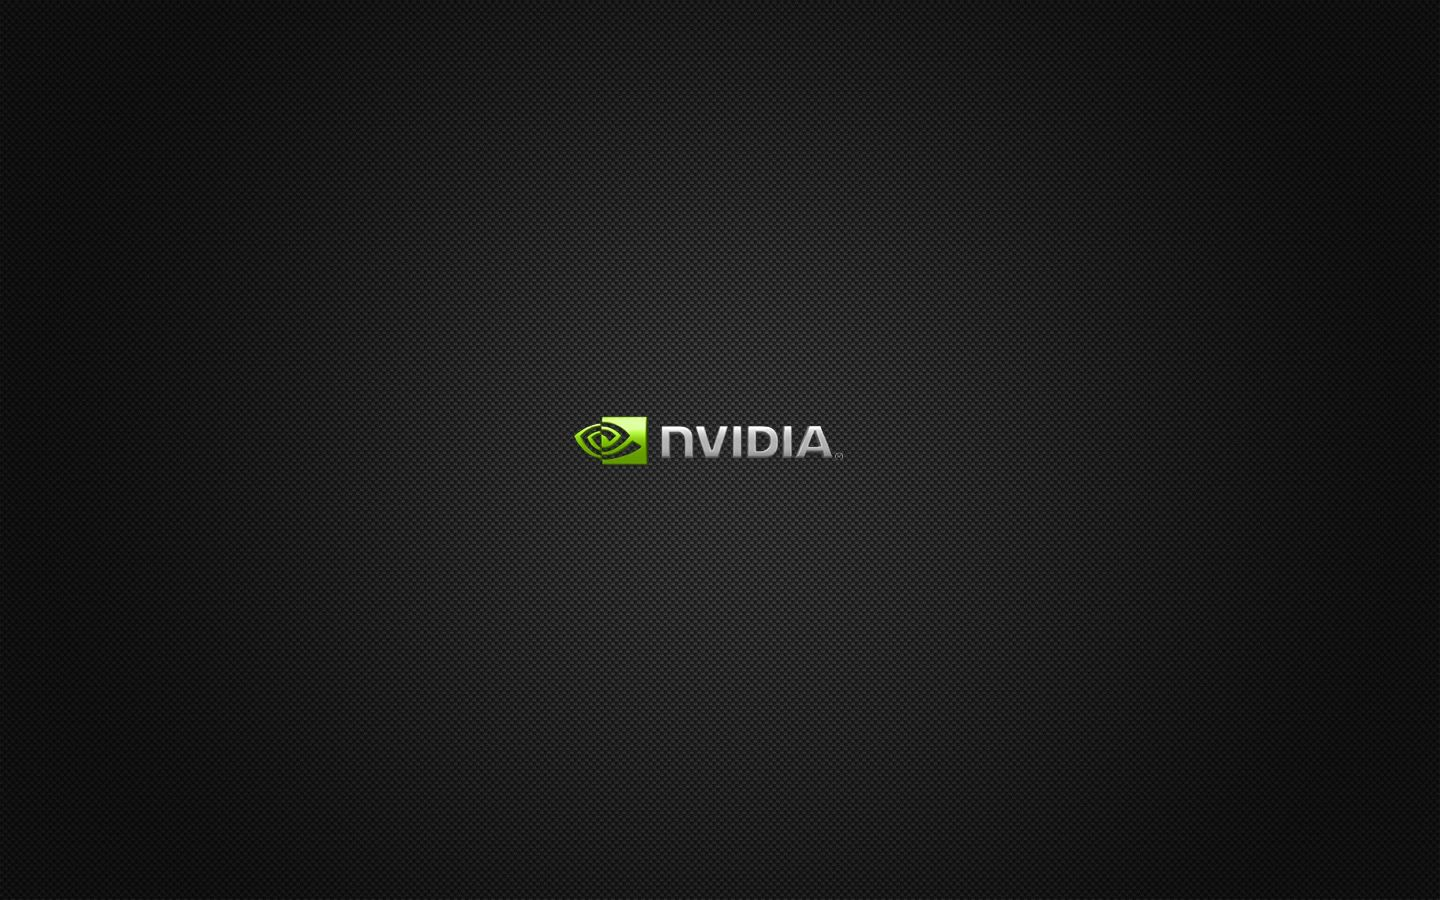 Nvidia Wallpapers, Pictures, Images